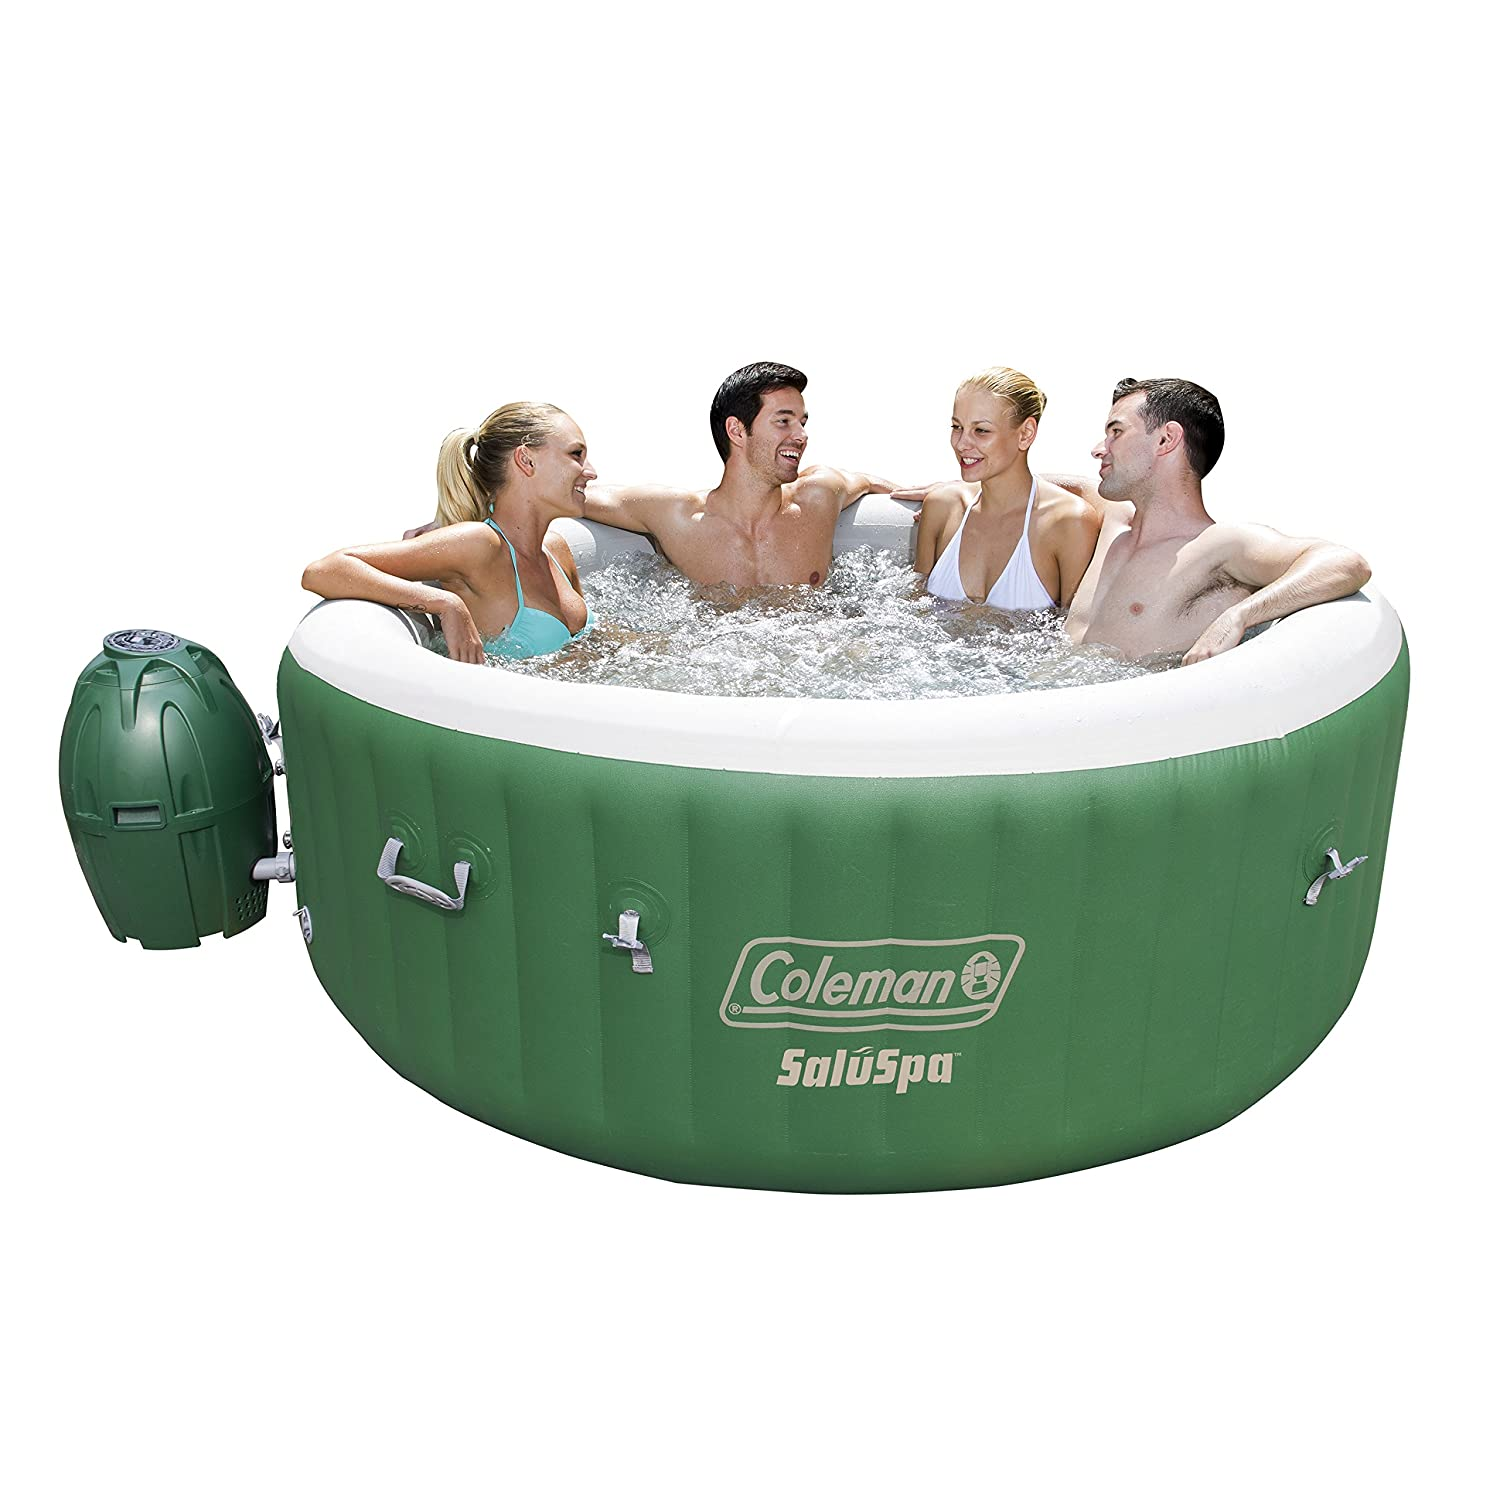 🛀 Best Chemicals For Hot Tubs, Spas, Jacuzzis & Whirlpool Baths >>